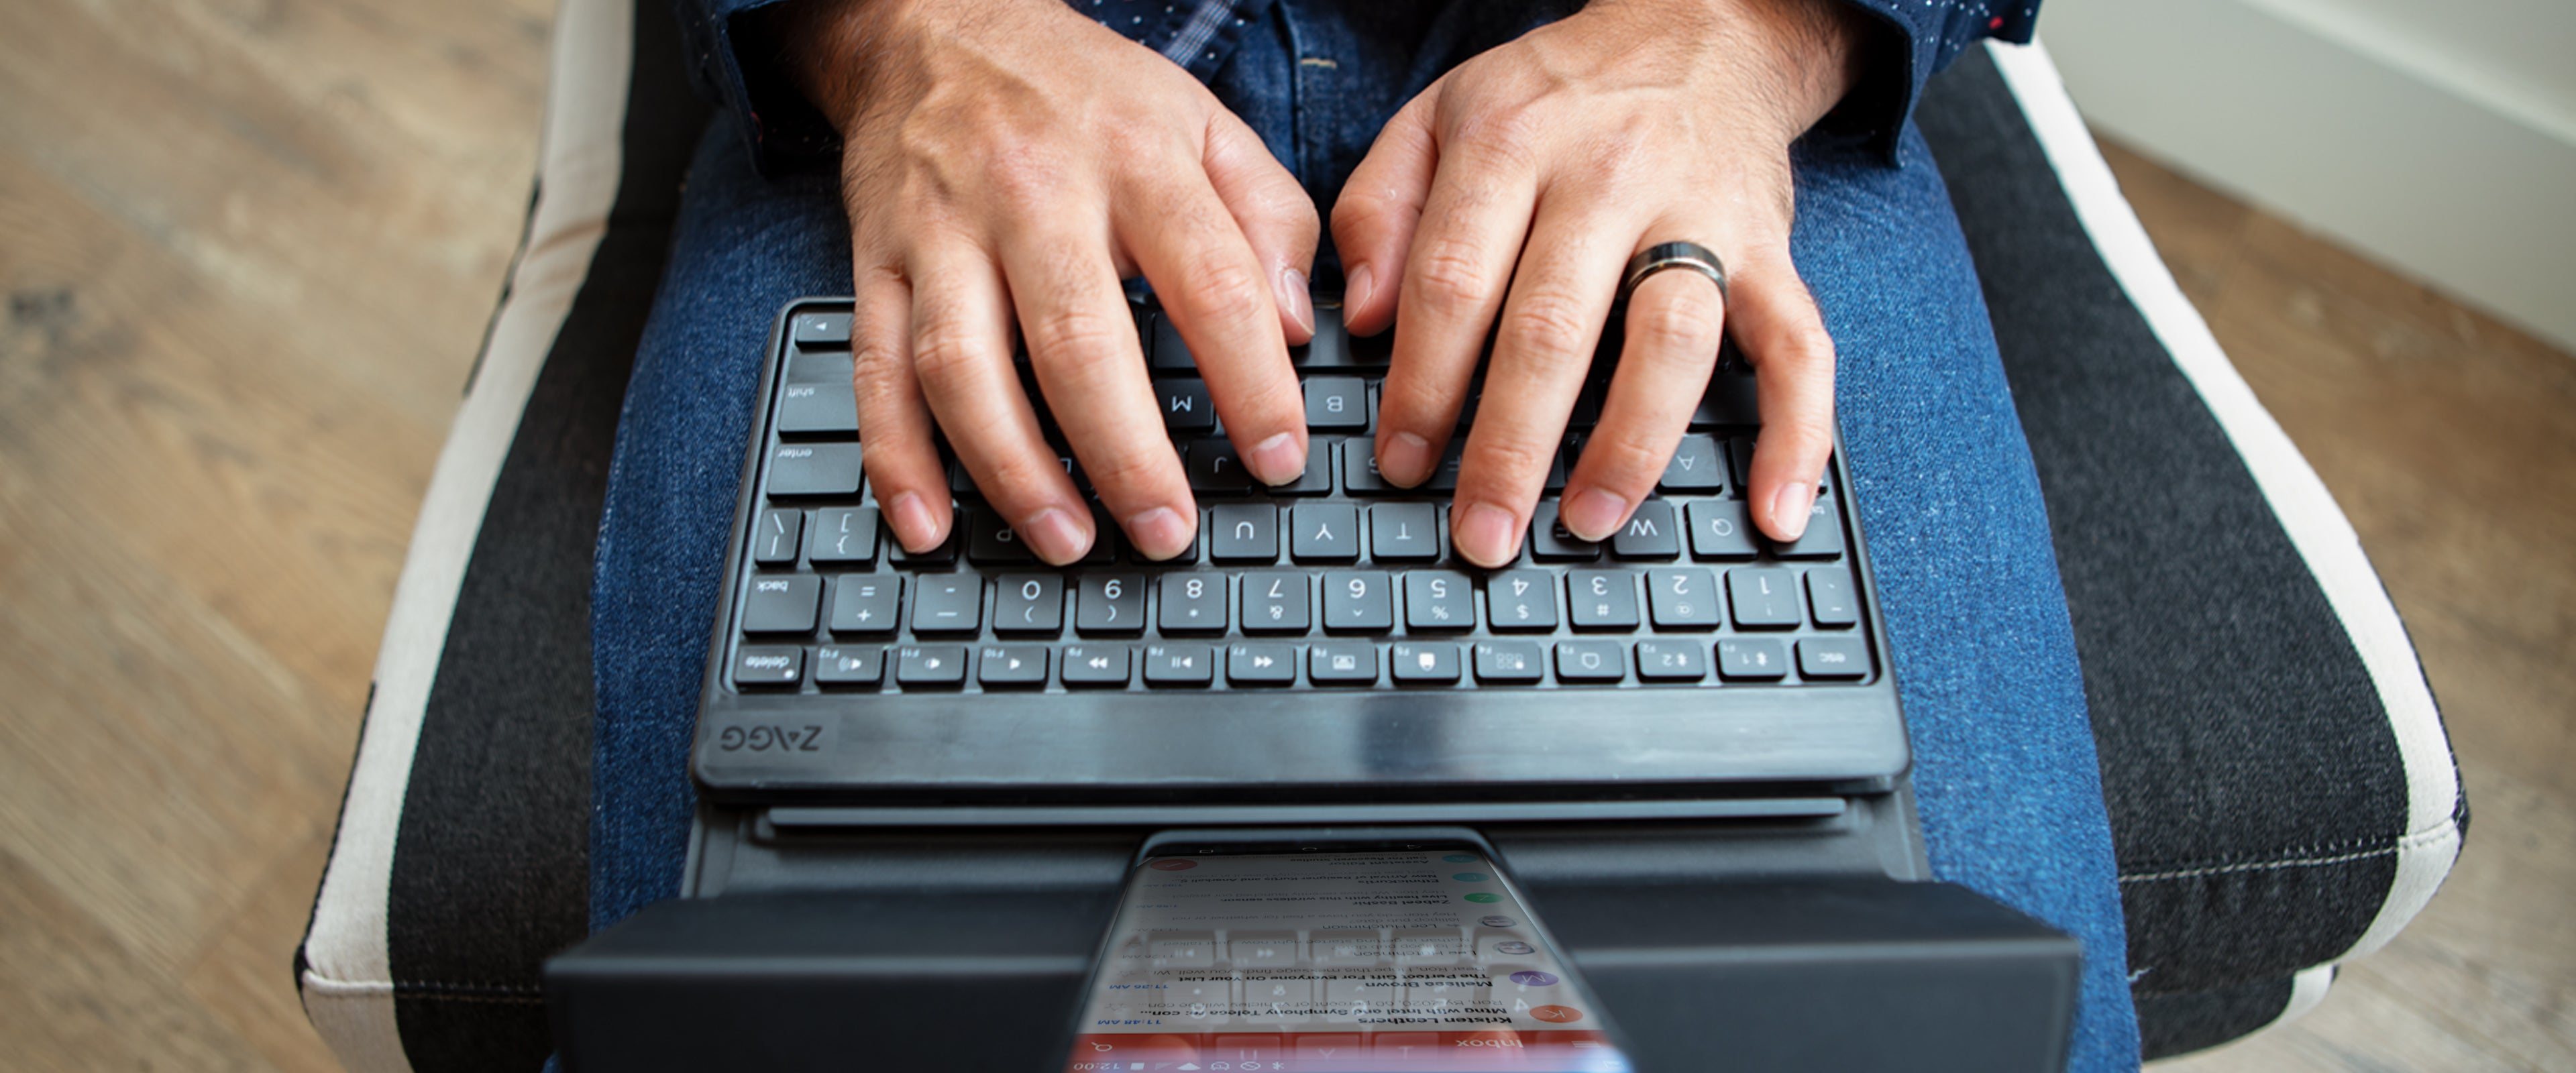 Man typing on a Flex Universal Keyboard